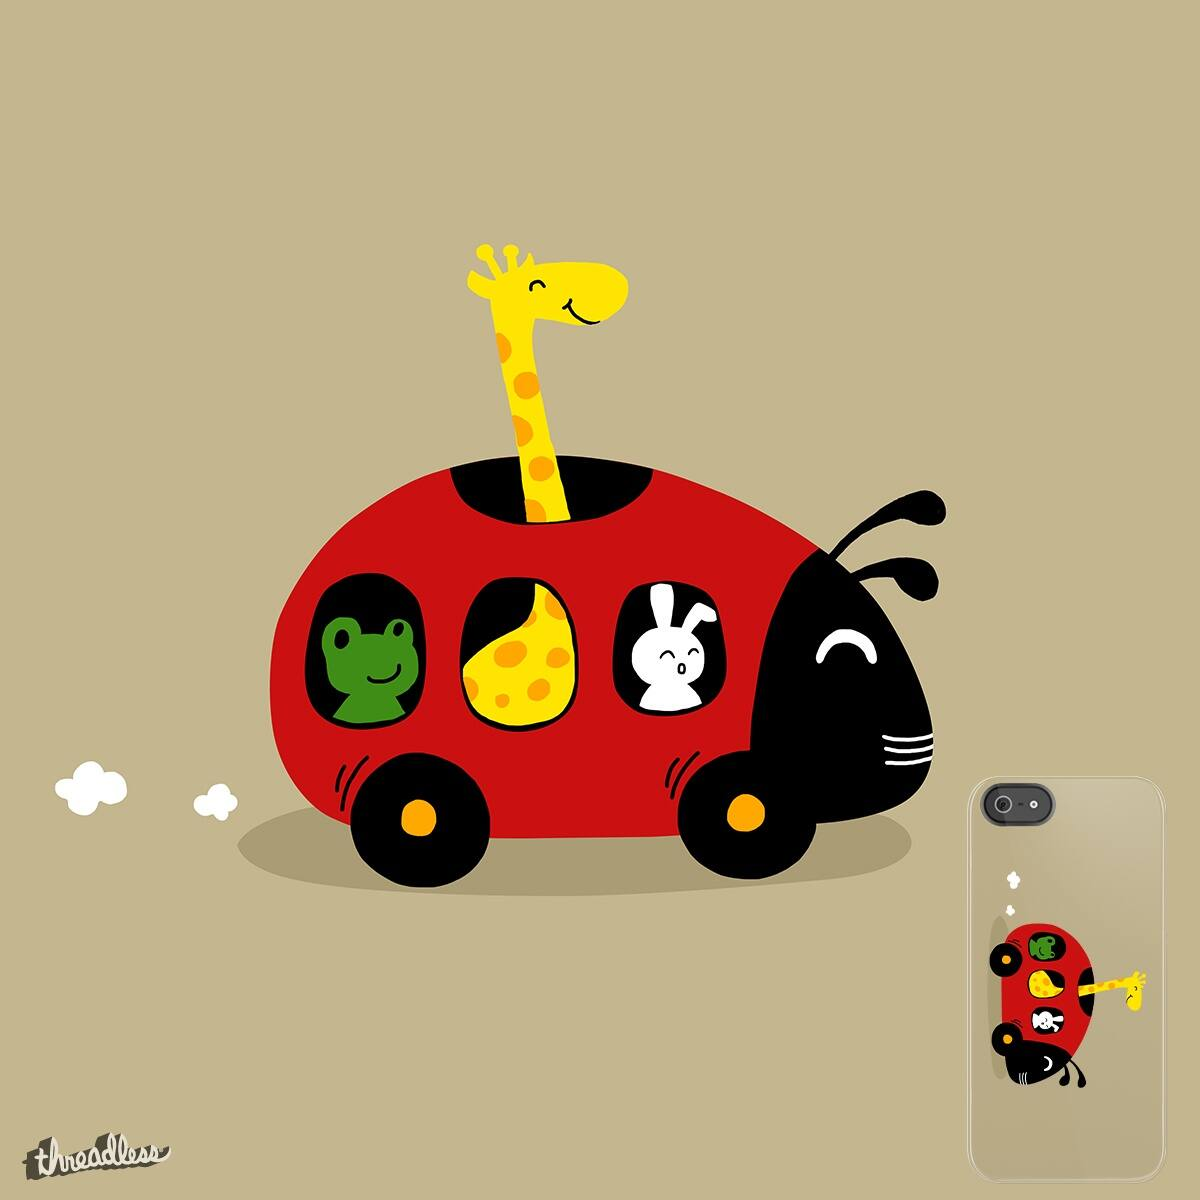 The beatle is a car by bebluesky on Threadless